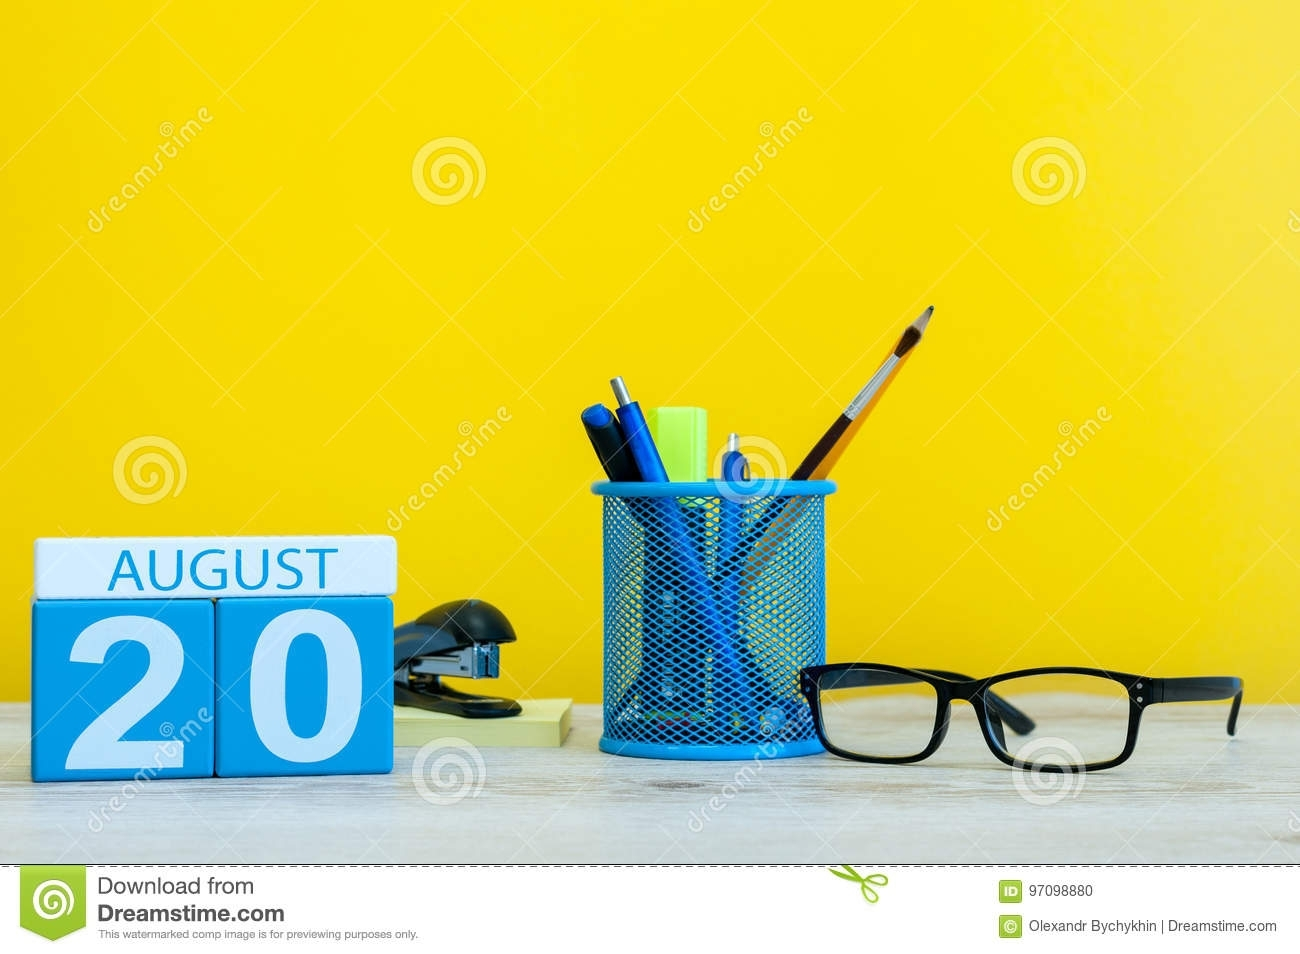 August 20Th. Image Of August 20, Calendar On Yellow Background With pertaining to Summer Picture For Birthday Calendars